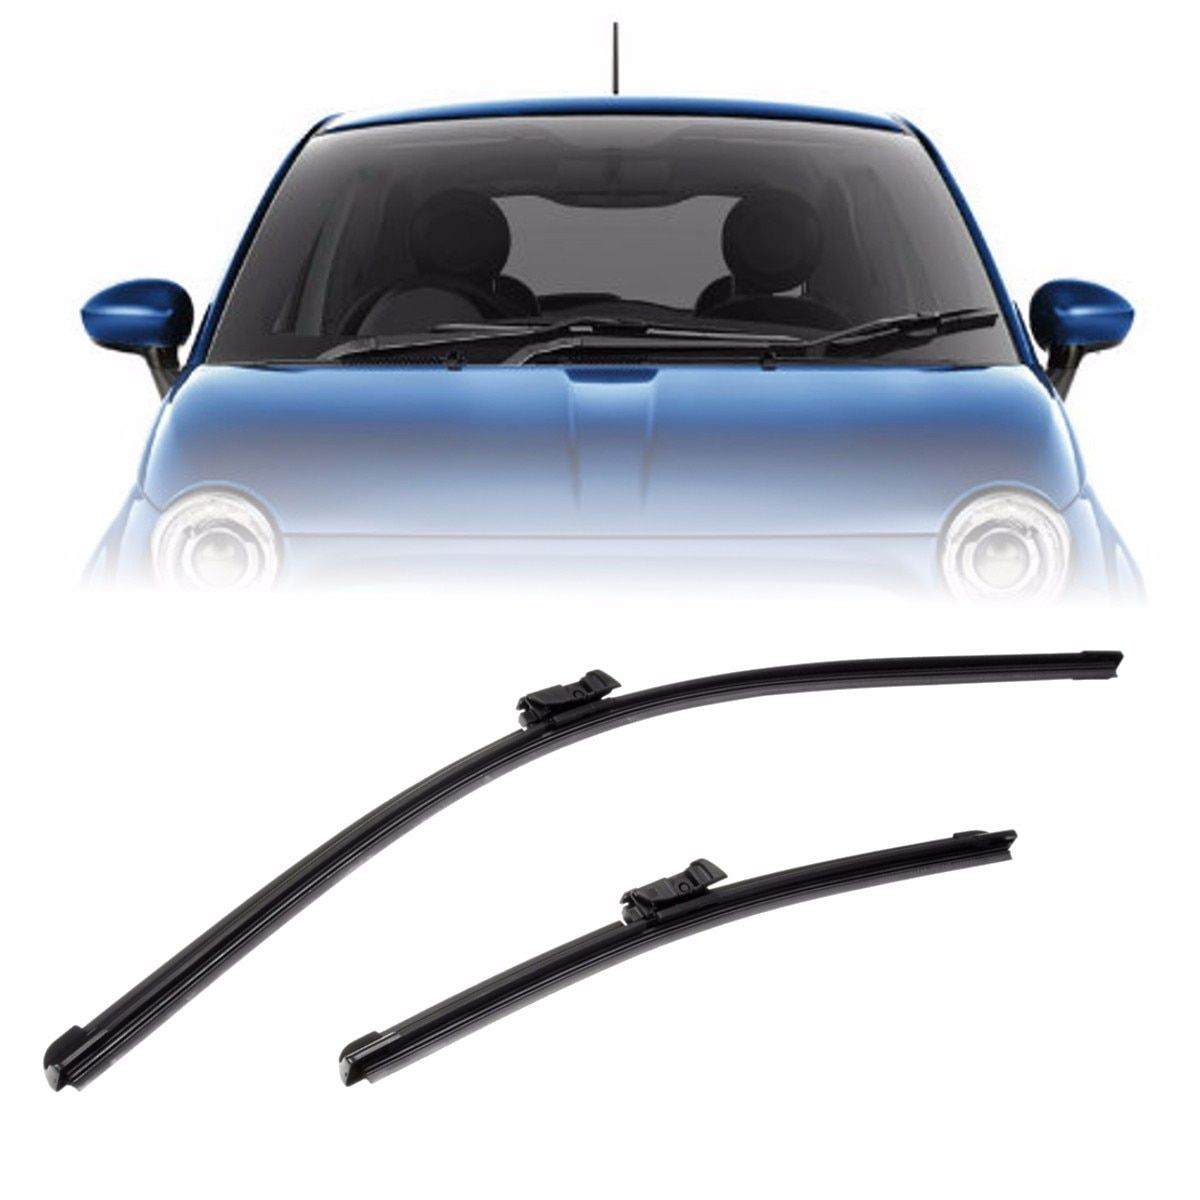 14'' & 24'' SPECIFIC FLAT FRONT WIPER BLADES FOR ABARTH FIAT 500 500C 500L 07-ON